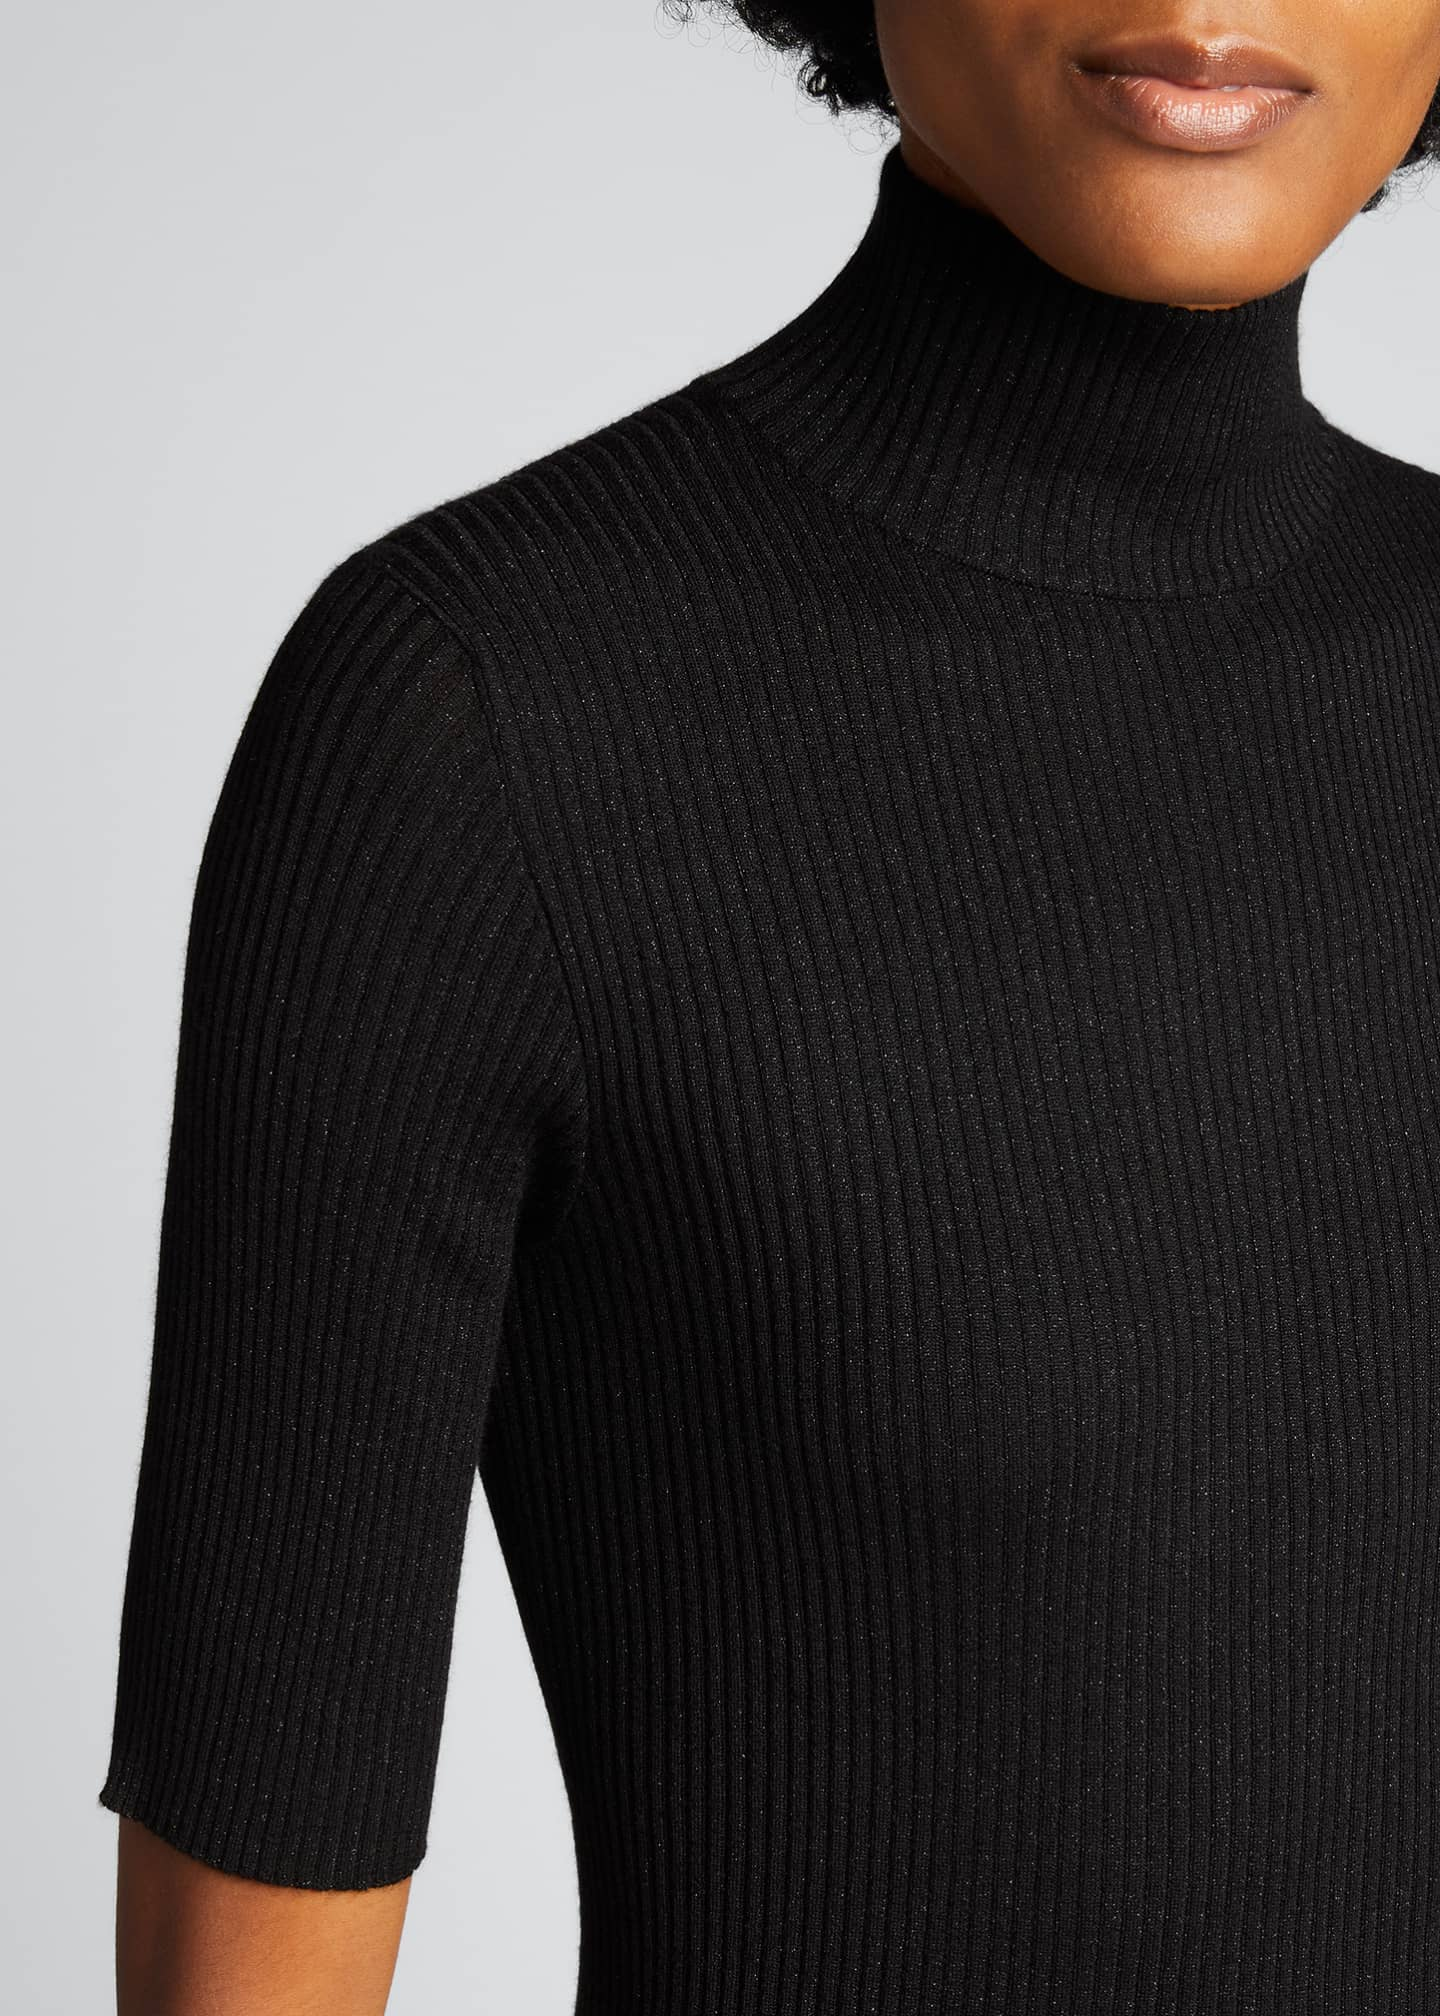 Image 4 of 5: Ribbed Lurex Fine Gauge Cashmere Sweater